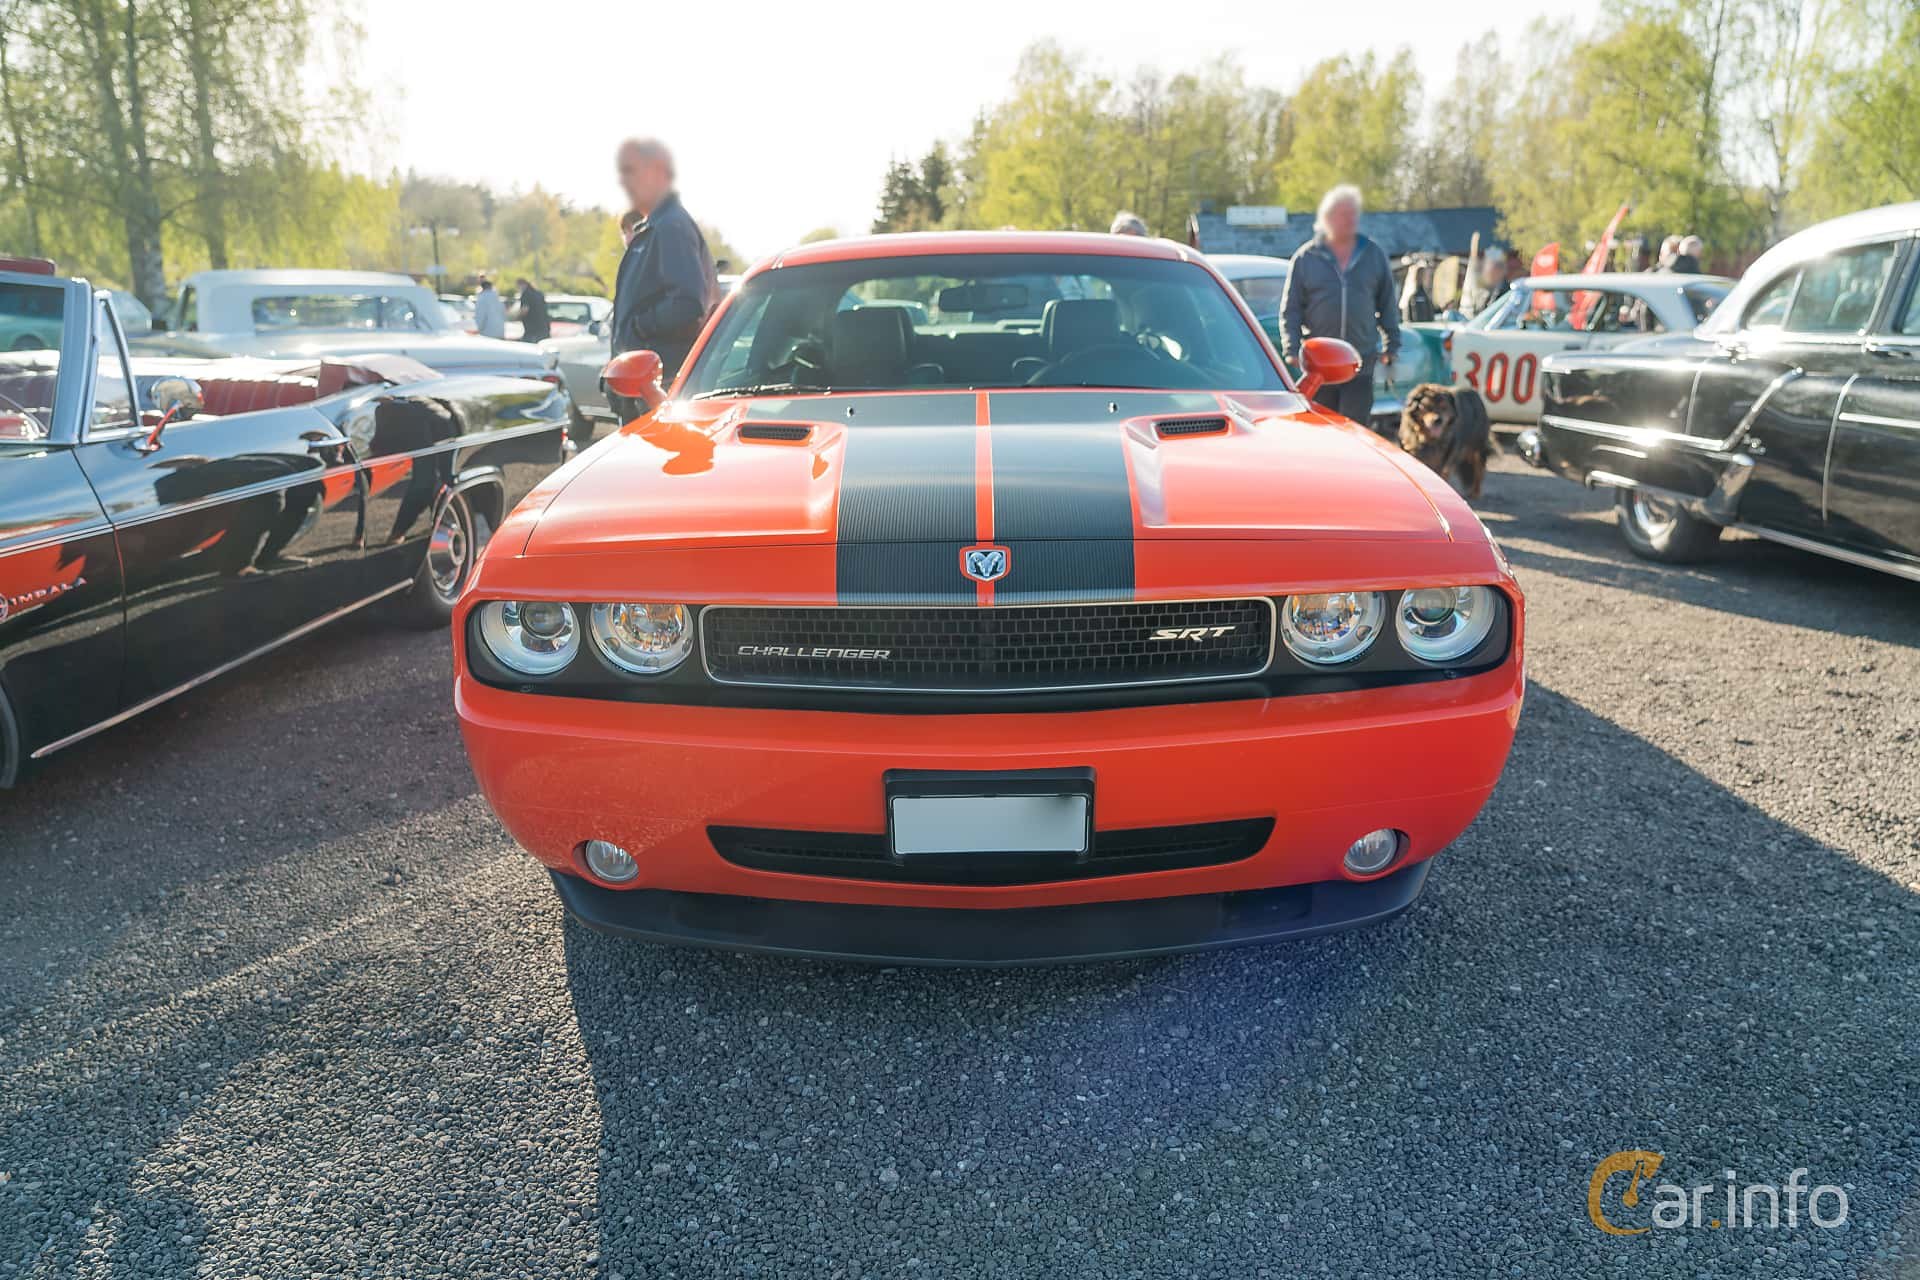 Front  of Dodge Challenger 6.1 V8 HEMI Automatic, 431ps, 2009 at Lissma Classic Car 2019 vecka 20